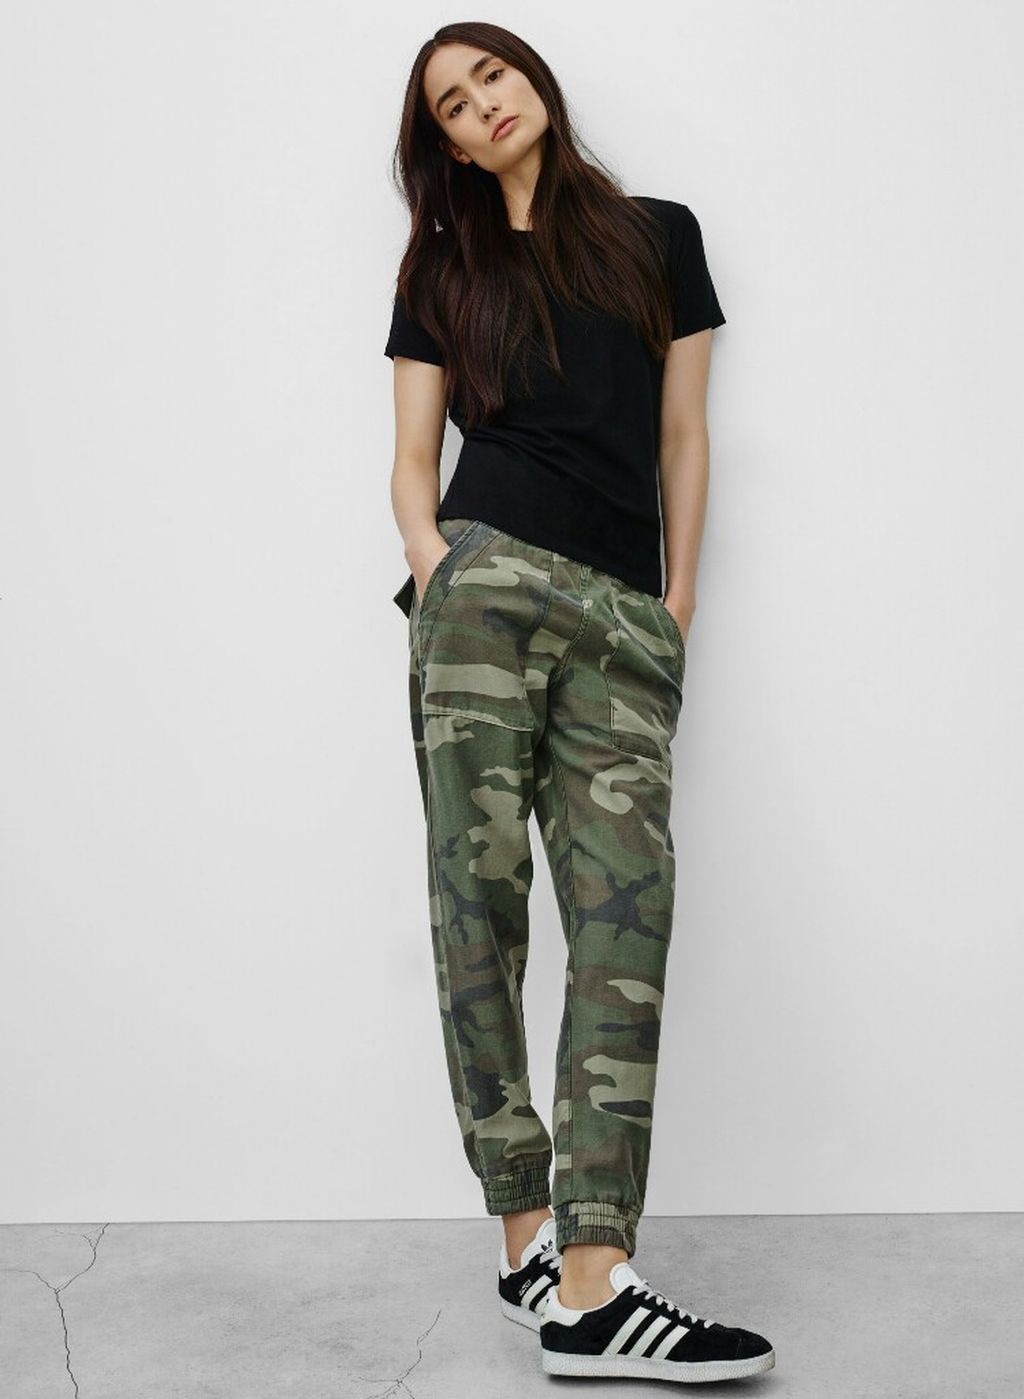 970ea9fd9a56 Cool 42 Stylish Womens Jogger Outfits Ideas For Winter. More at https